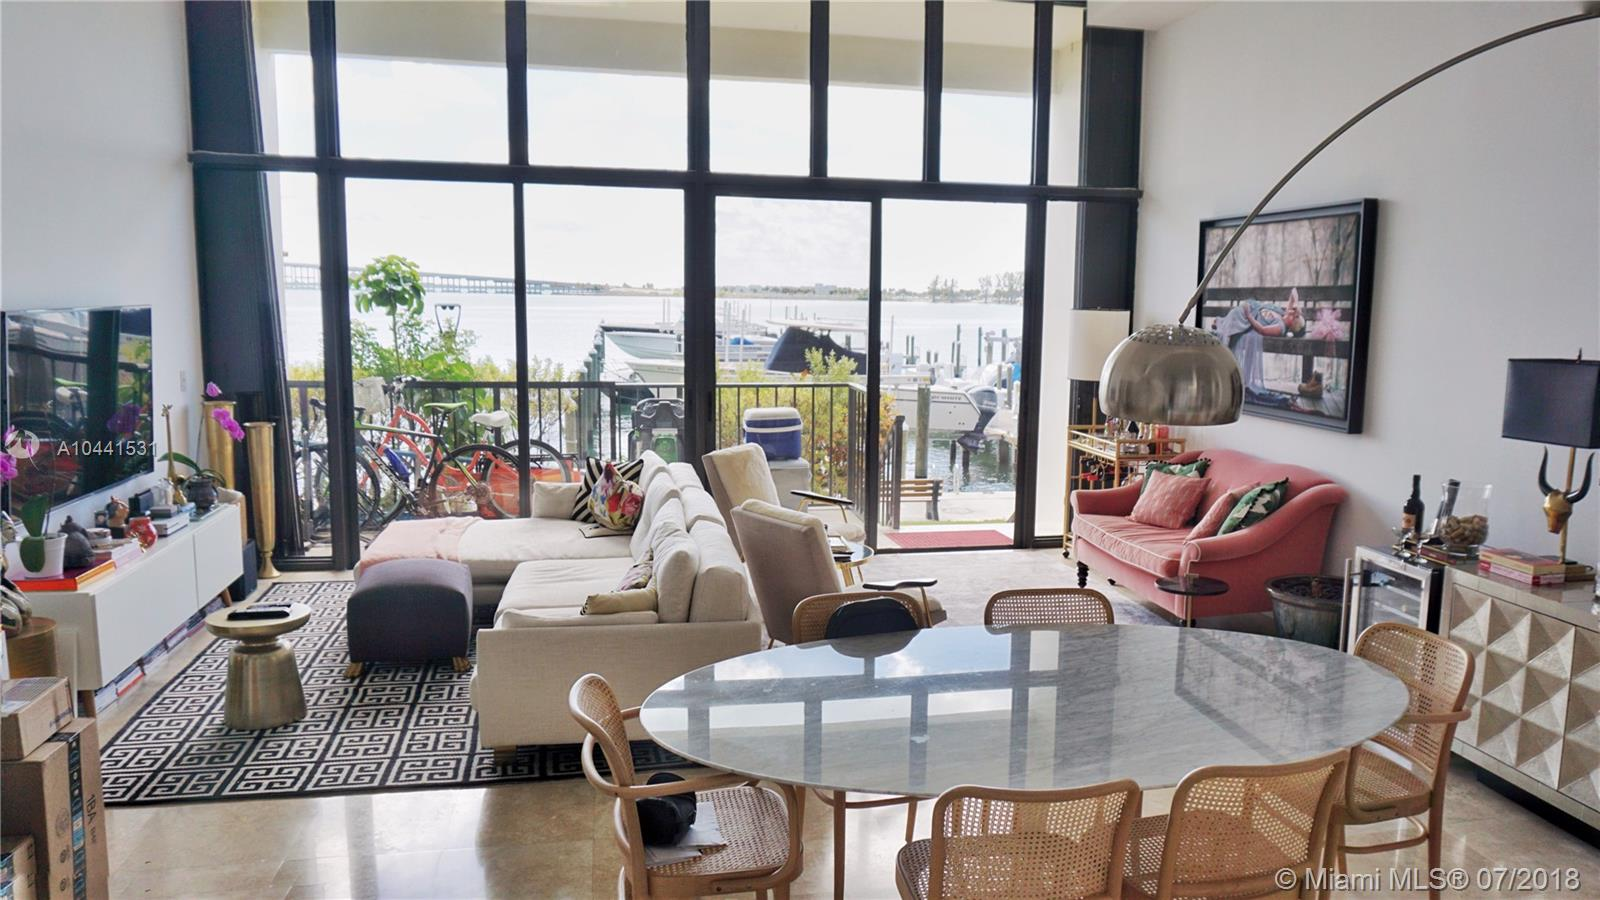 Beautiful and unique townhouse with amazing Biscayne Bay views. Recently completely remodeled with all modern upgrades one would expect. Master bedroom has walk-in closet and steam room shower. Floor to ceiling windows everywhere. Direct and private access. Two private parking spaces. It's like living in a home but with all the condominium amenities. Can be sold furnished or unfurnished.